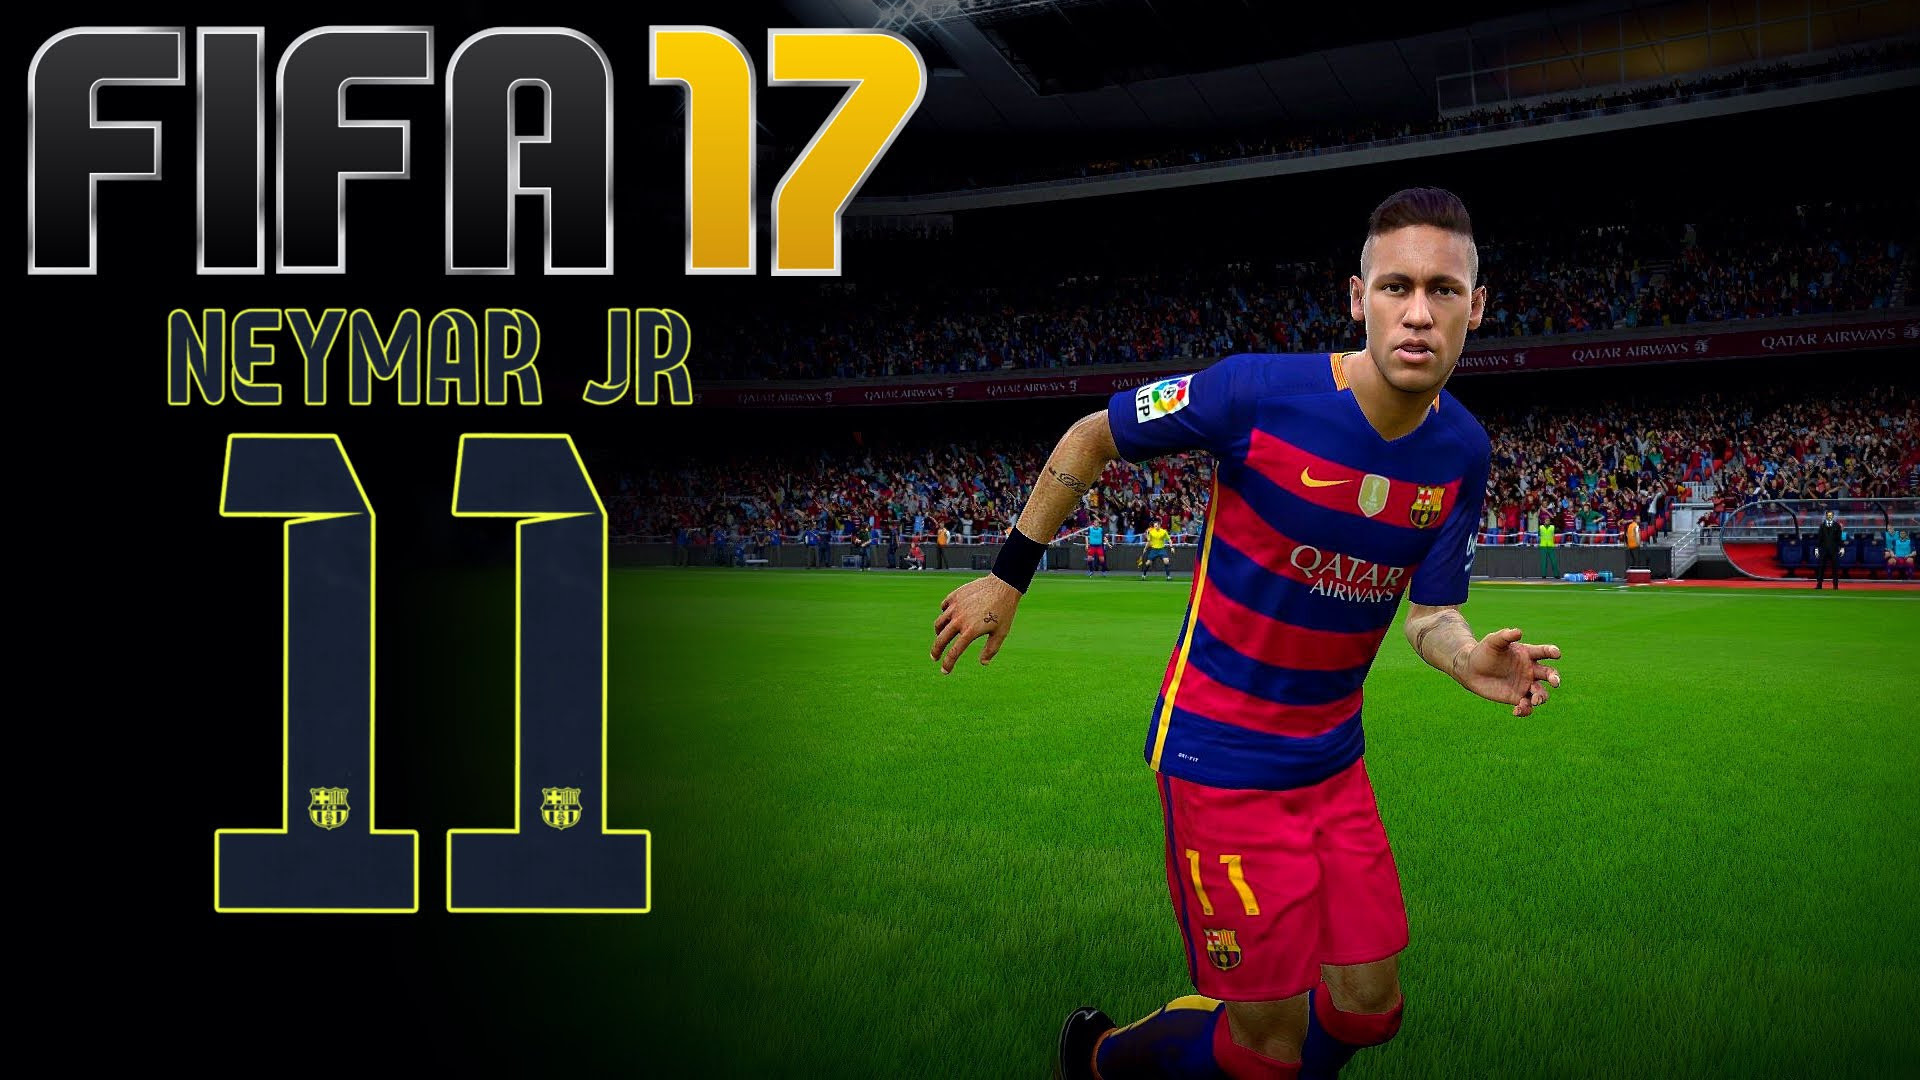 Neymar Hd Wallpapers 2018 85 Background Pictures